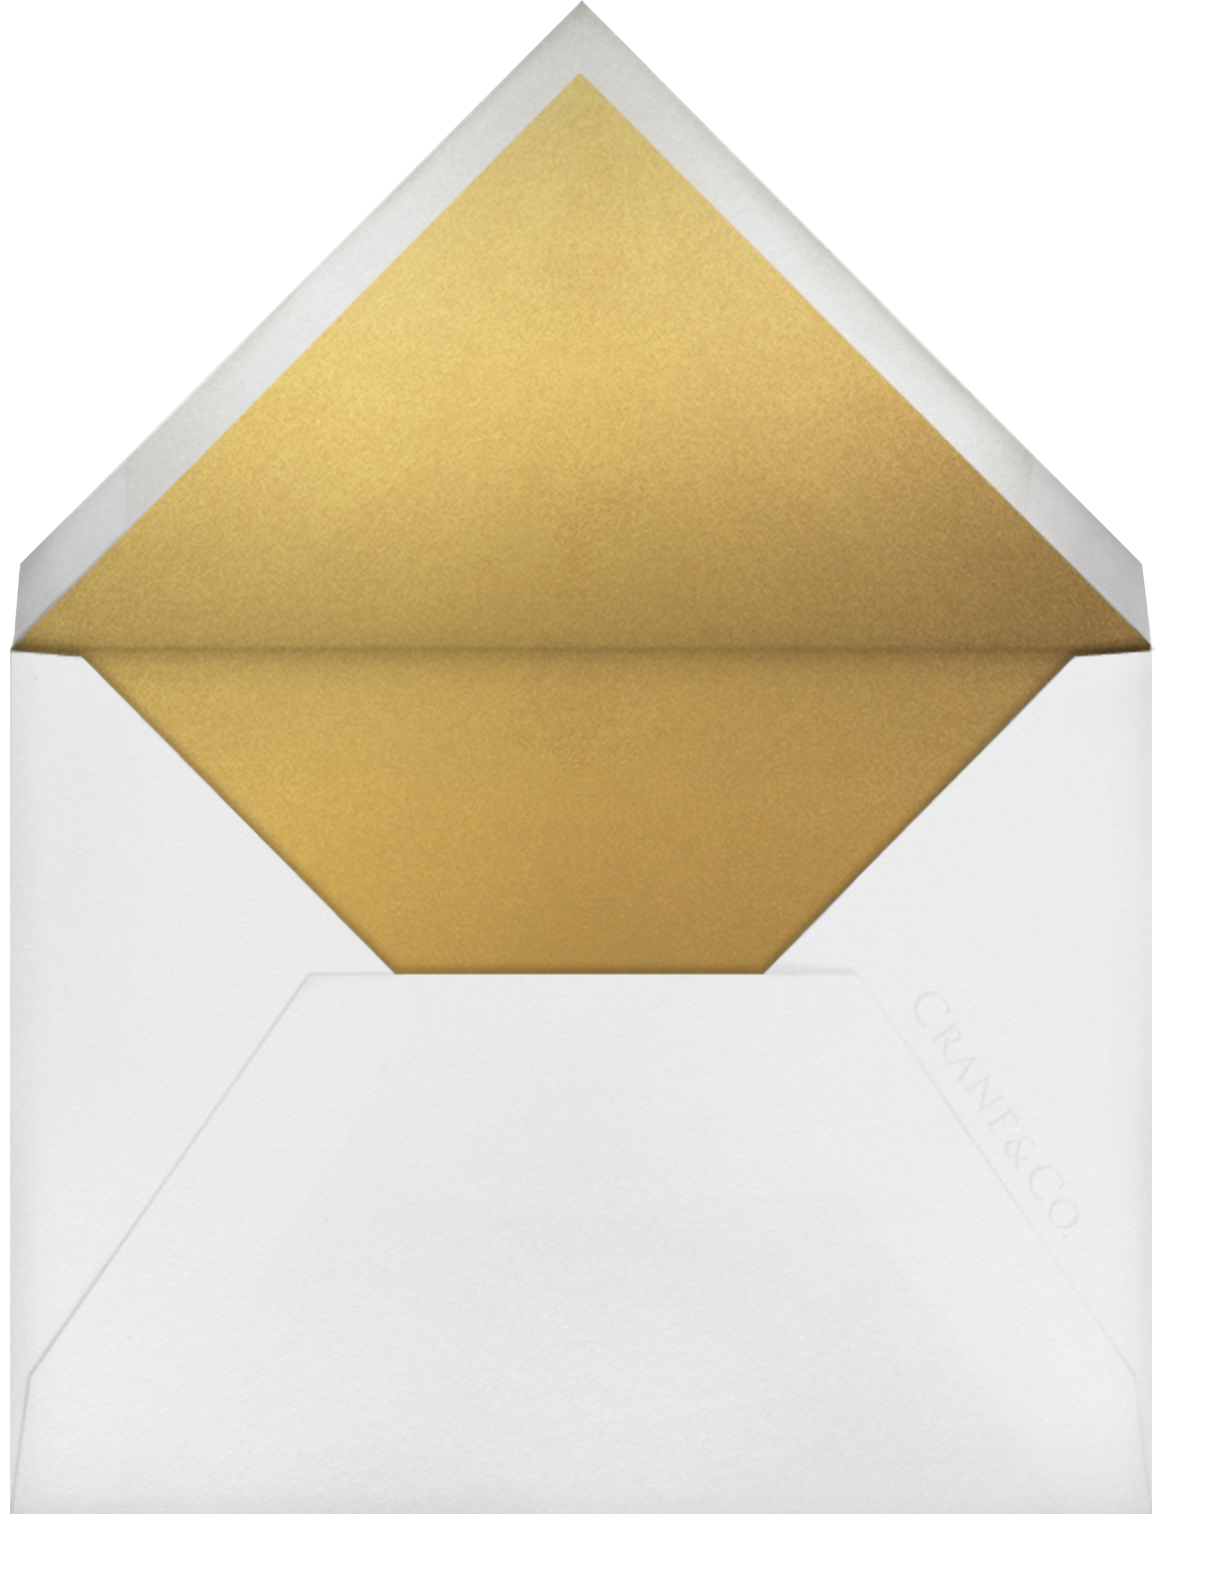 Jubilee I - Medium Gold - Kelly Wearstler - Christmas party - envelope back